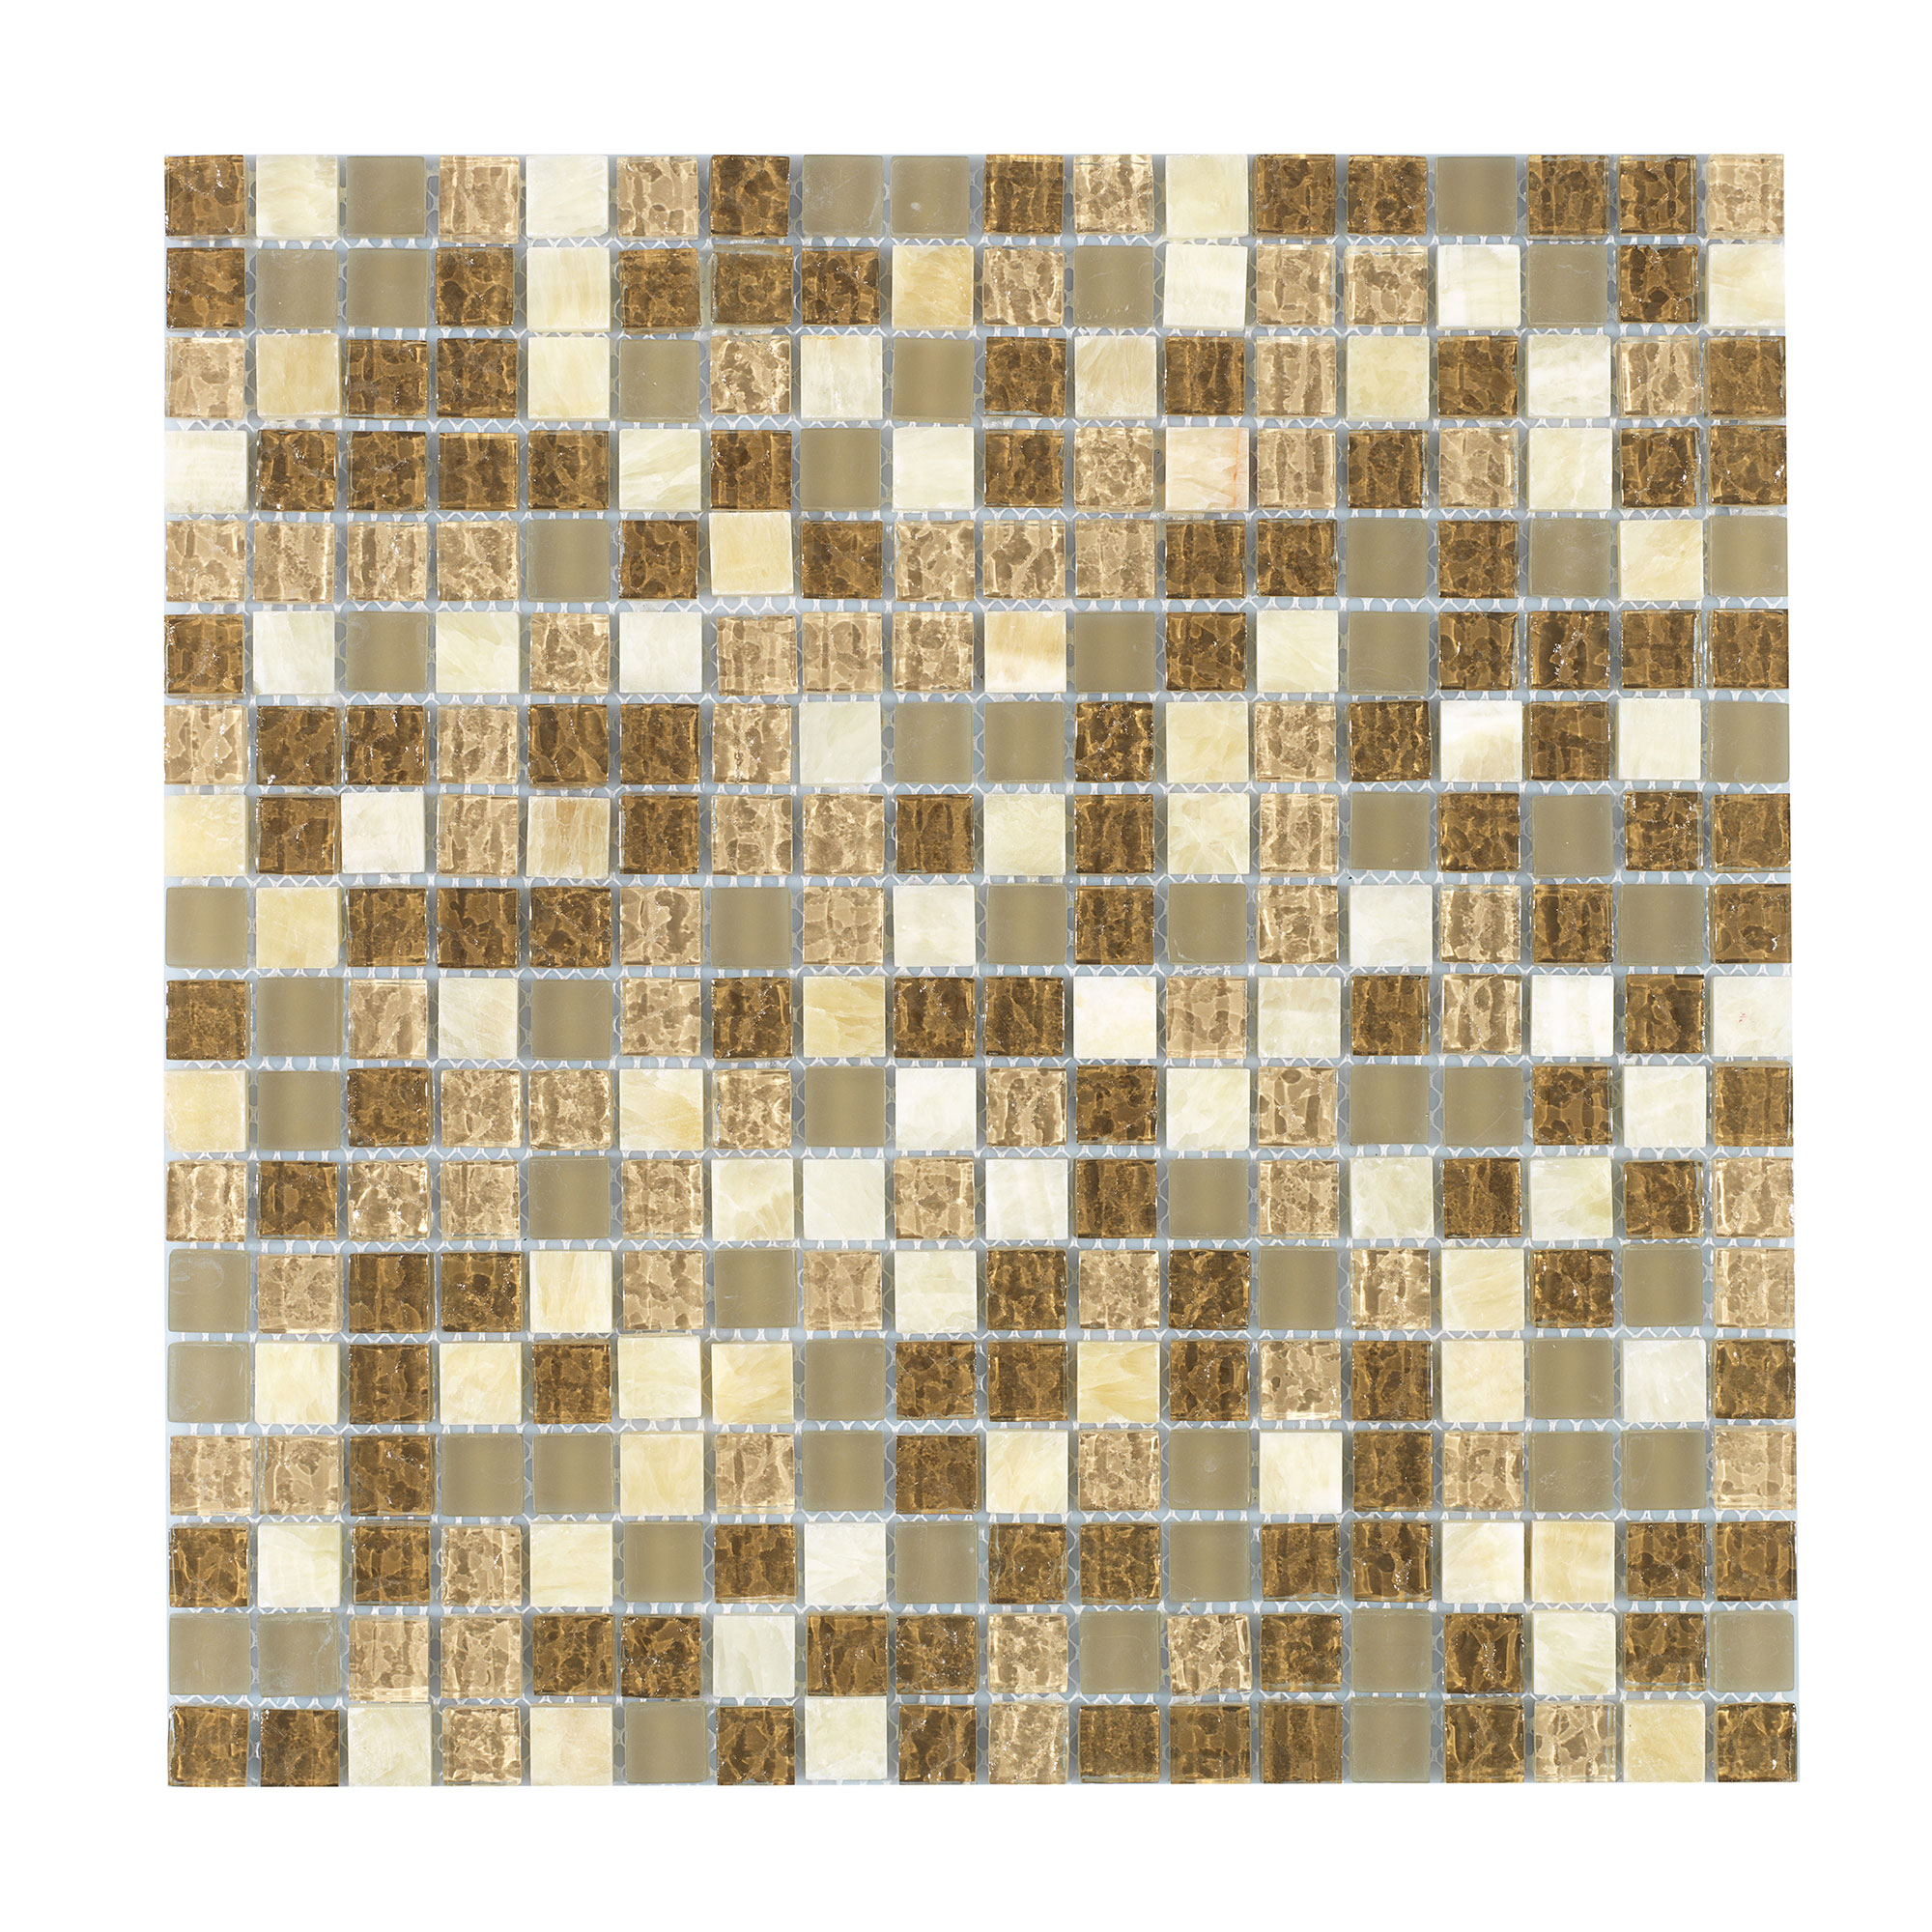 Kristallmosaik Arredo Exclusive Stone Light Brown 1,5x1,5 cm